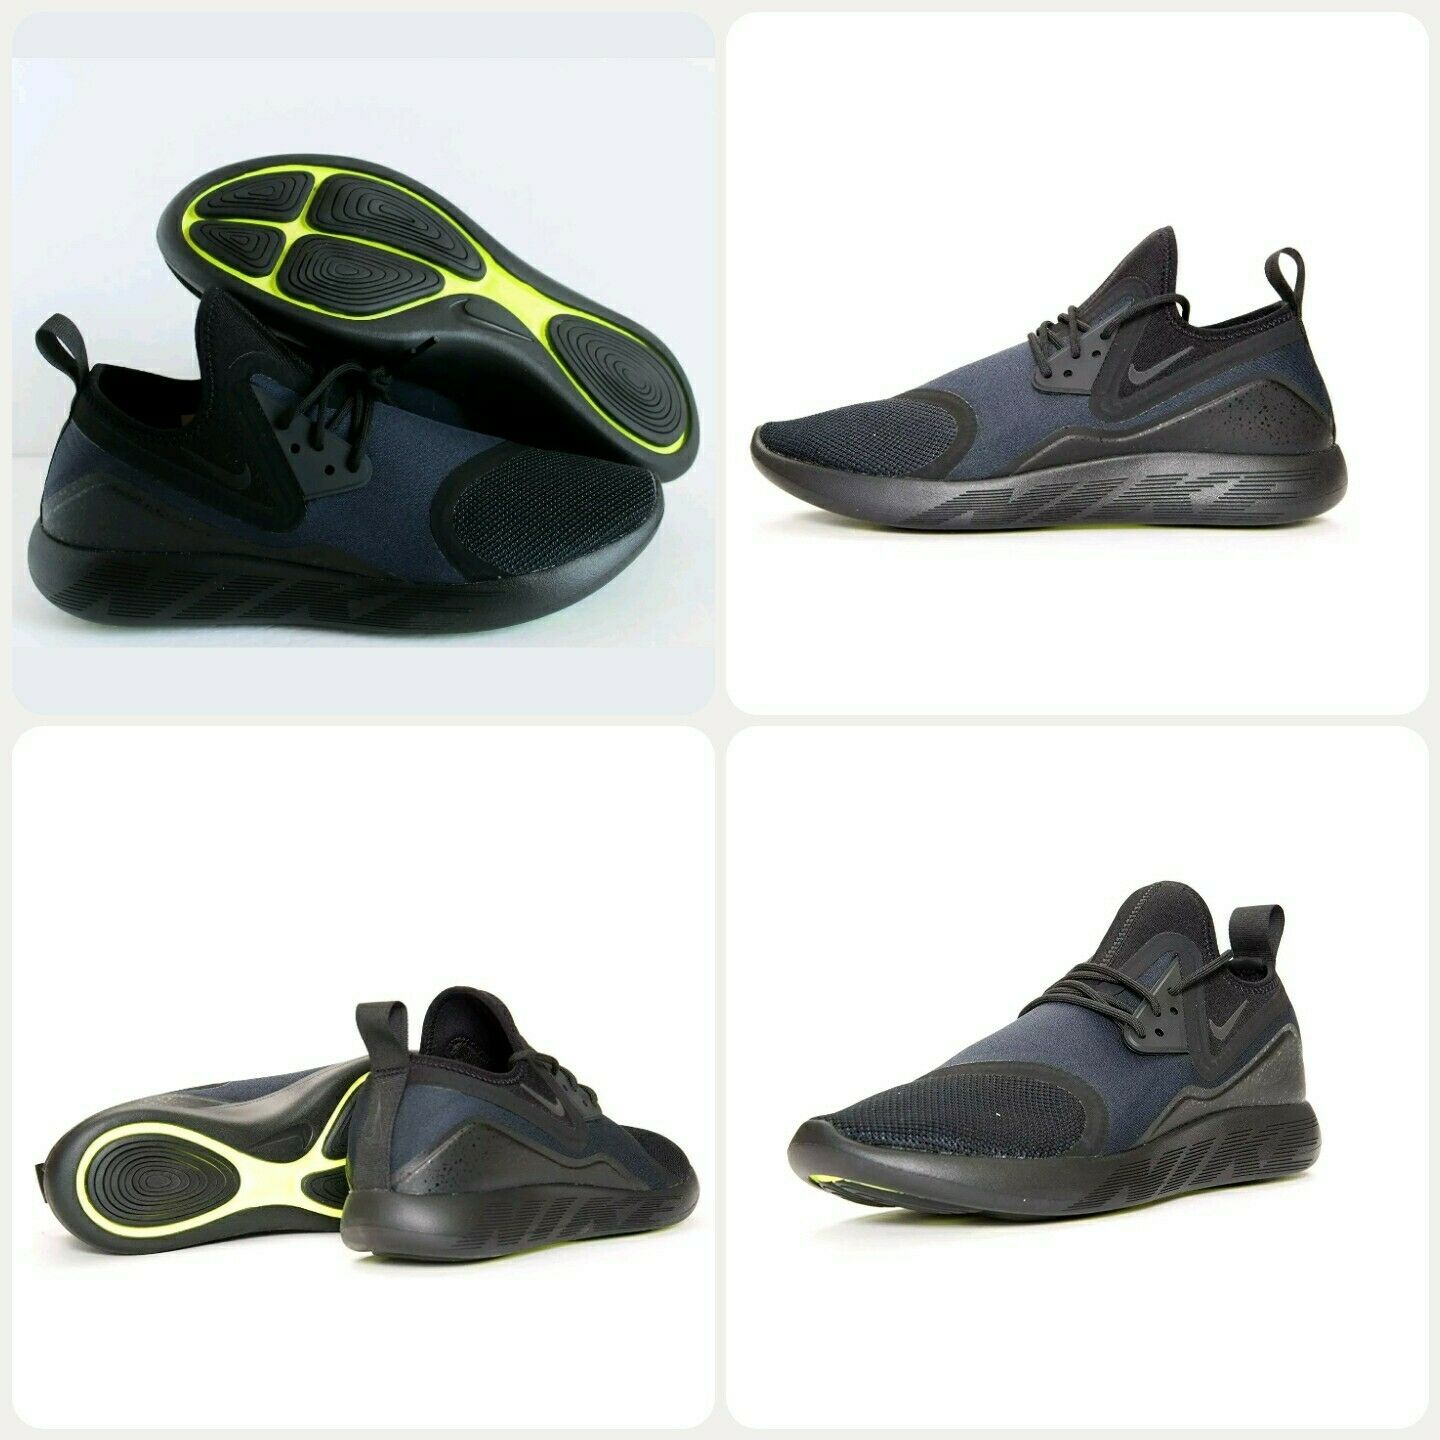 Nike Mens Lunarcharge Essential Round Toe Training Running shoes Size  9.5 M US